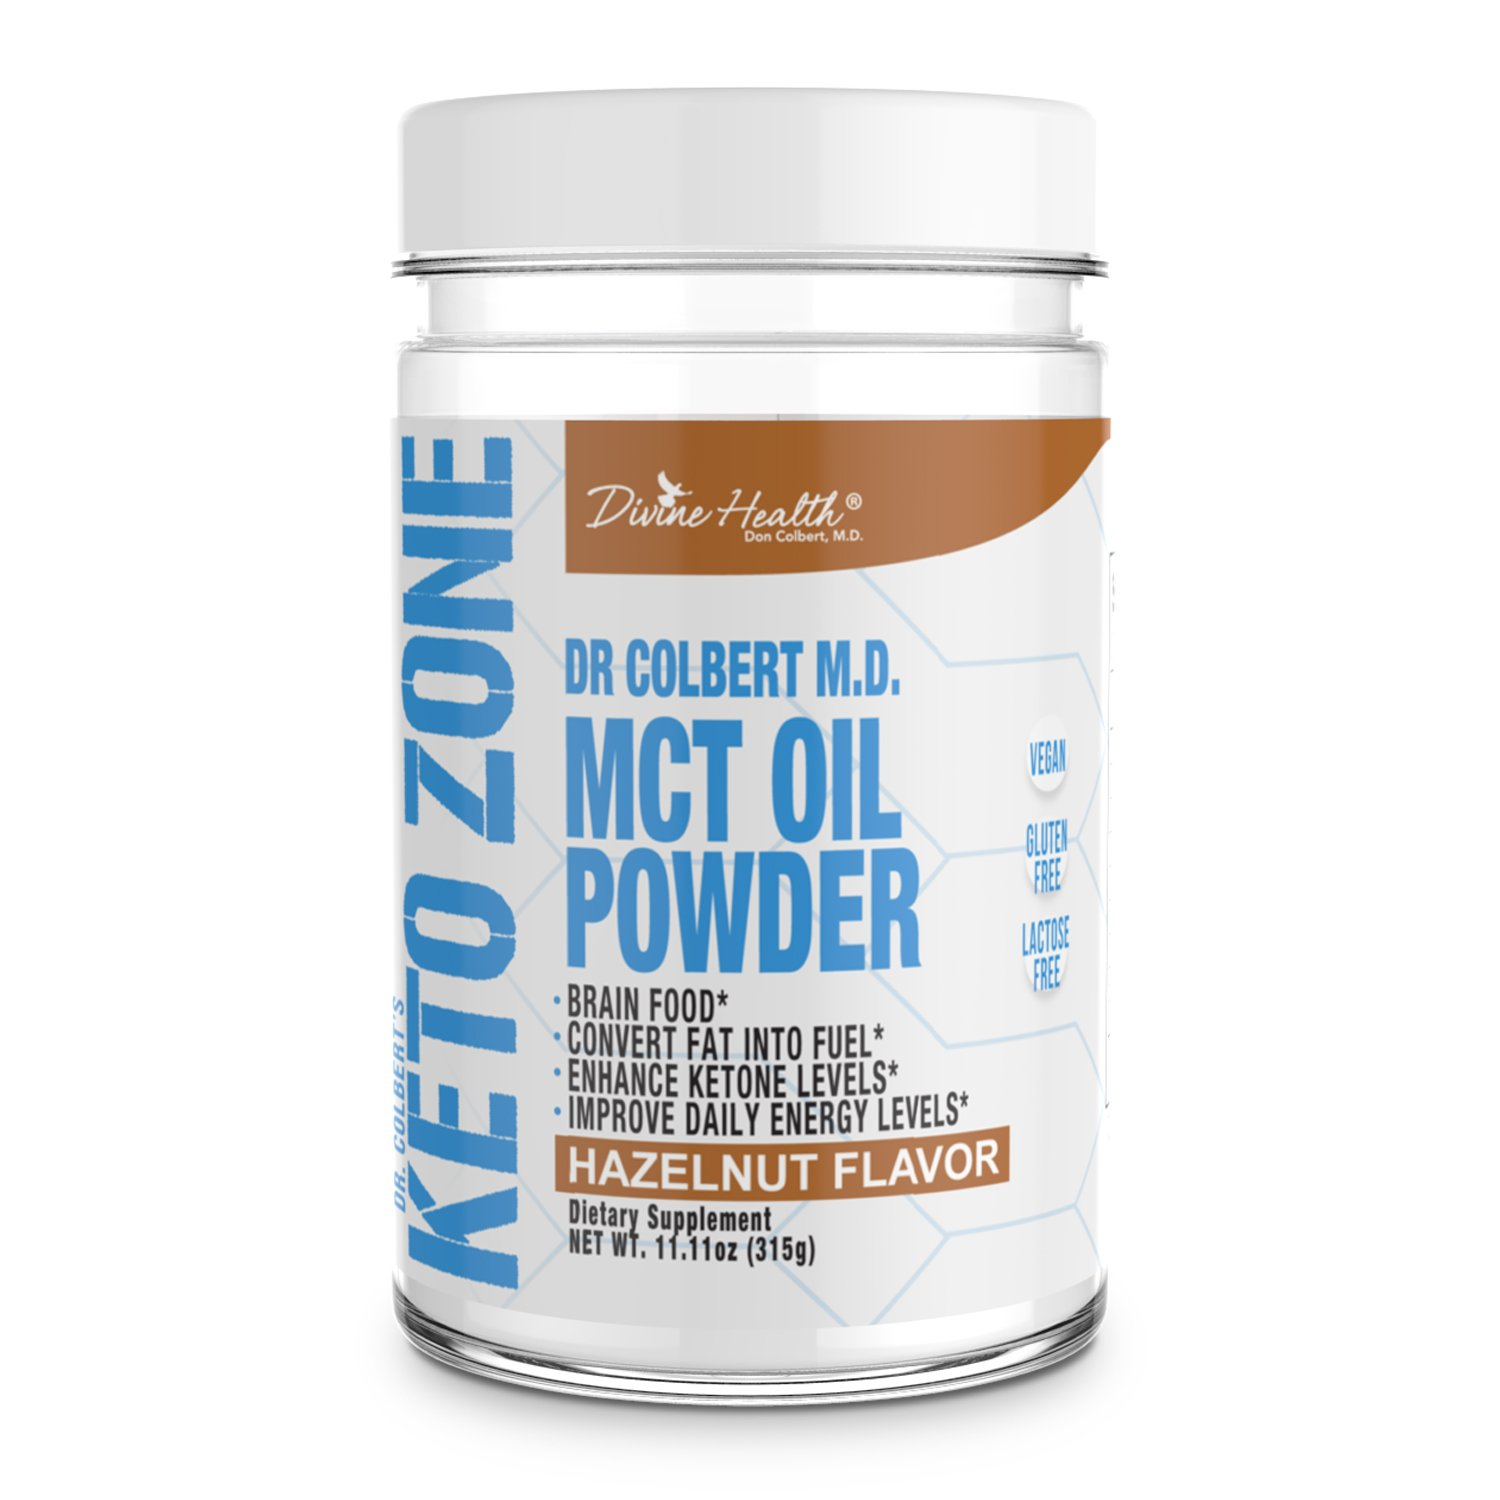 Dr.Colbert's Keto Zone MCT Oil Powder (Hazelnut Flavor) (300 Grams) (30 Day Supply) - Recommended in Dr. Colbert's Keto Zone - Alternative Coffee Creamer - Ketogenic - Dairy Free - Soy Free